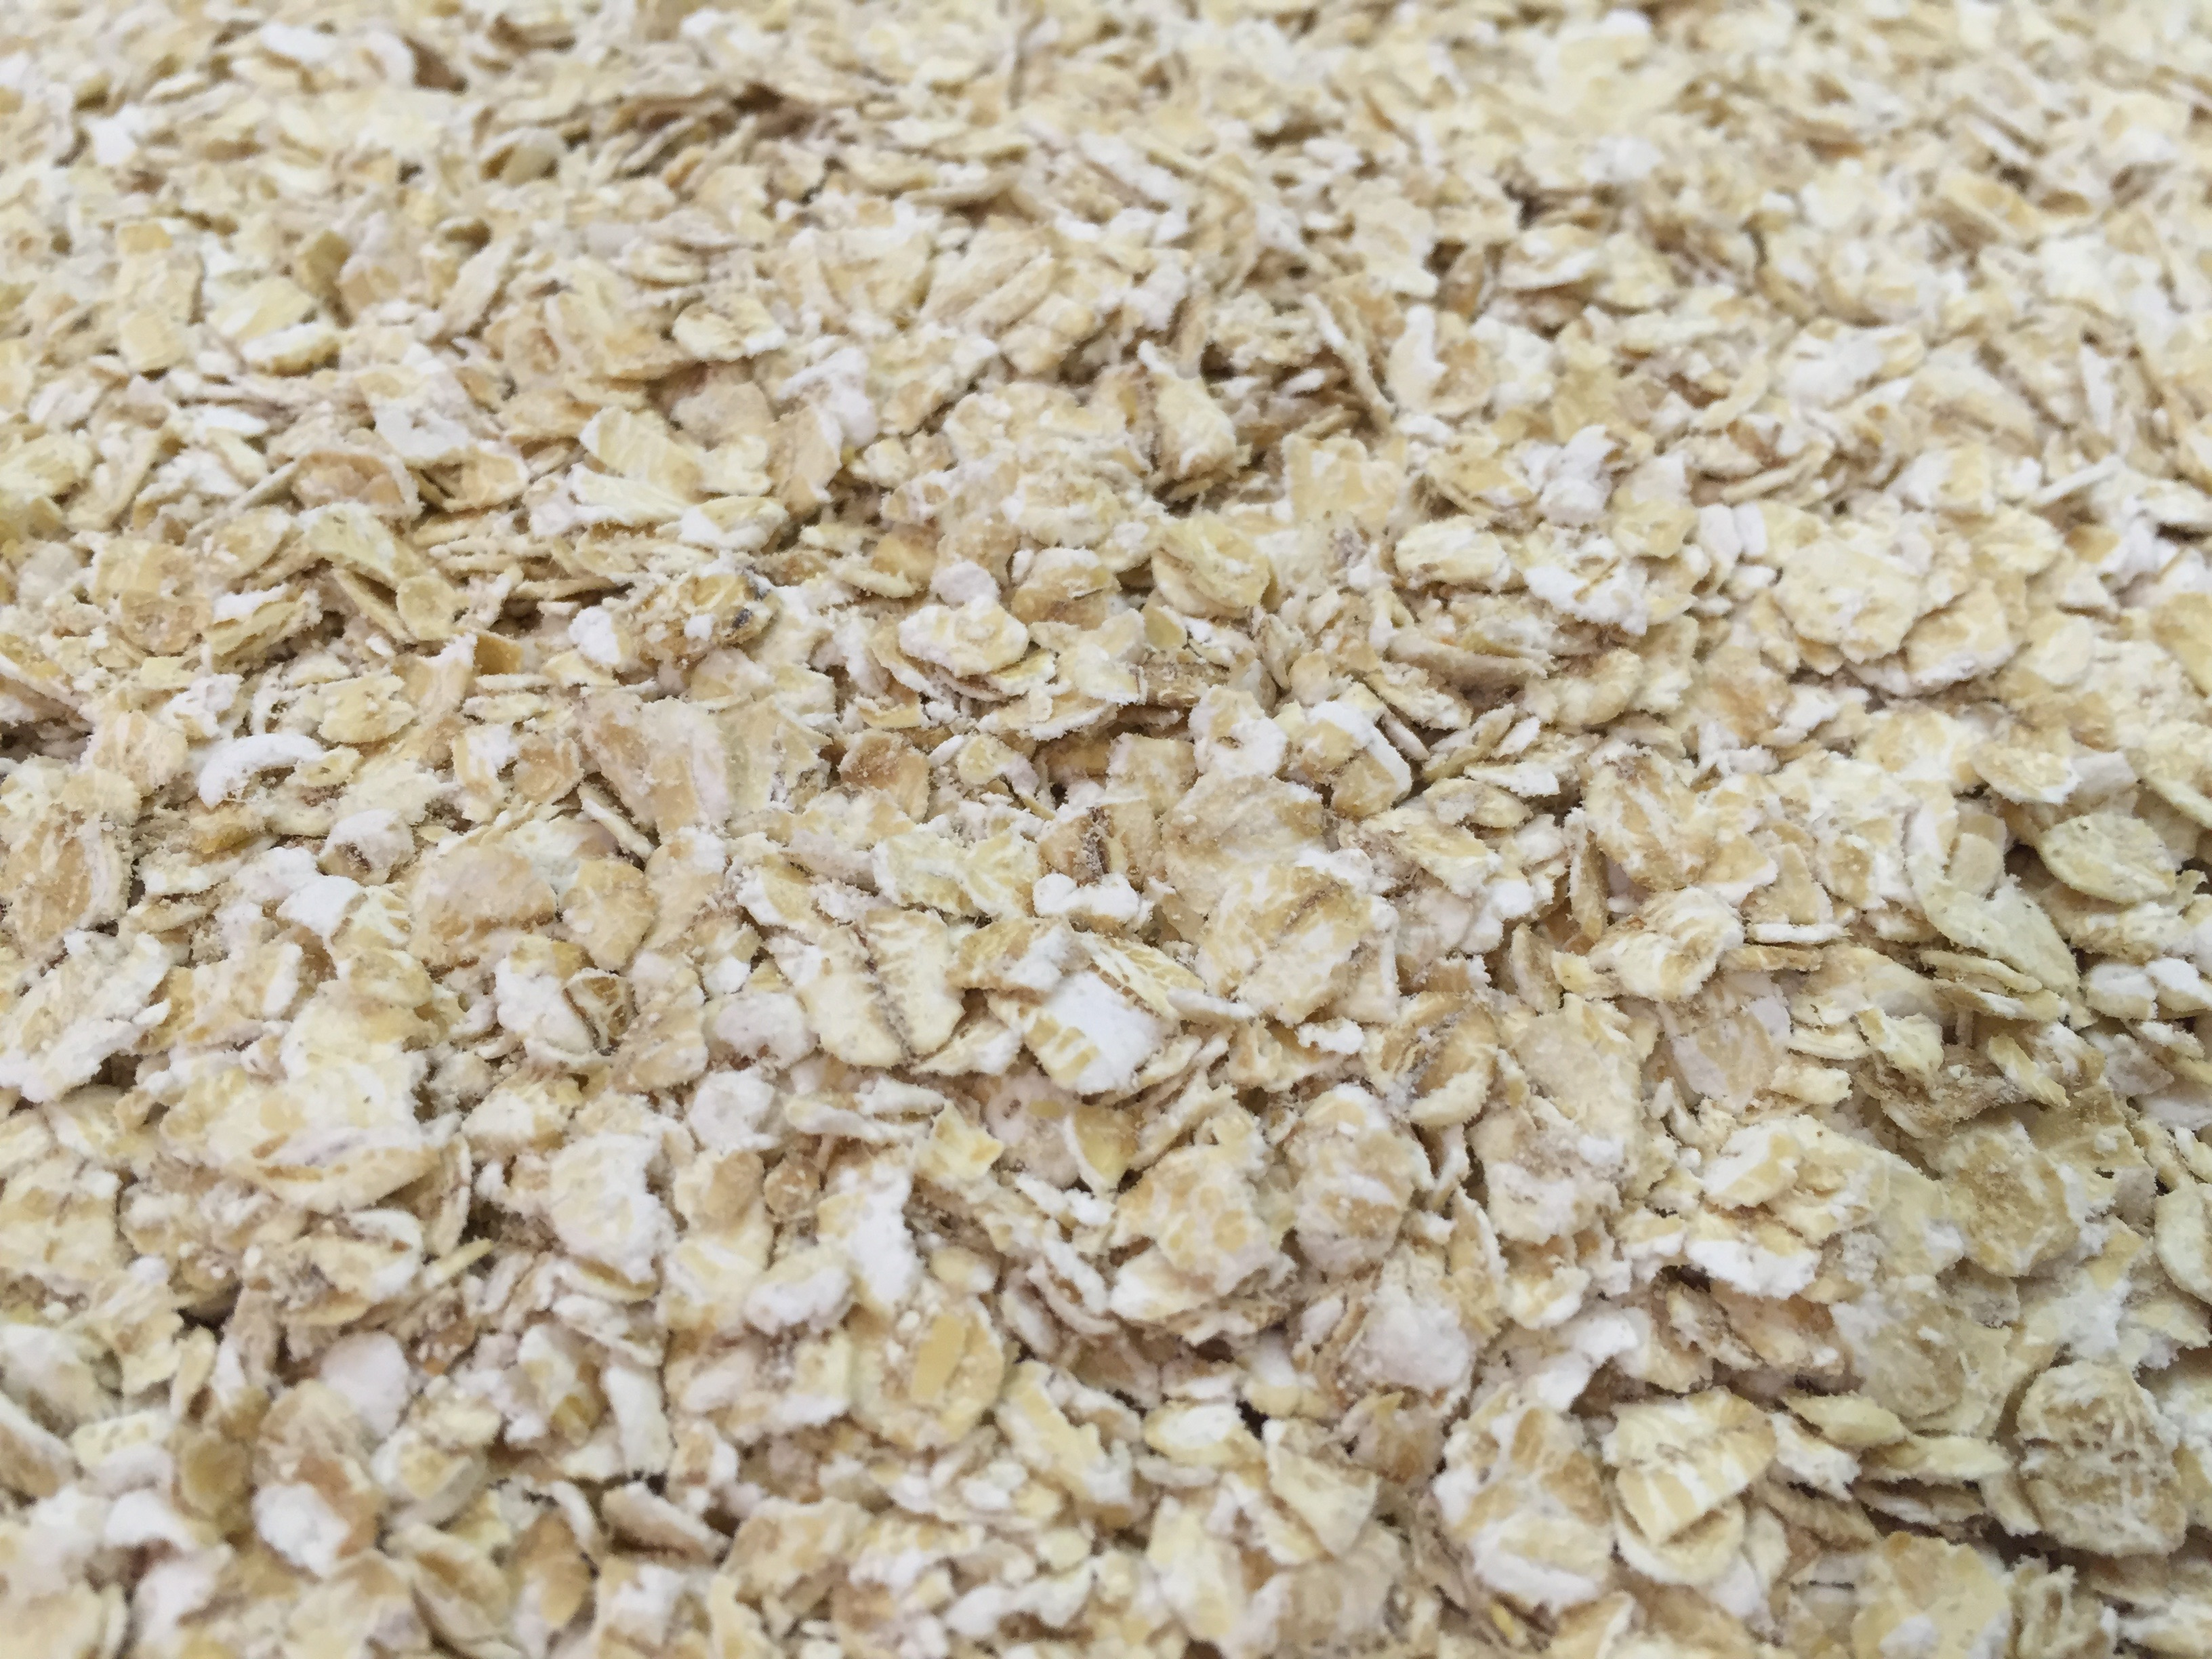 Can Dogs Eat Oatmeal? Is Oatmeal Good For Dogs?